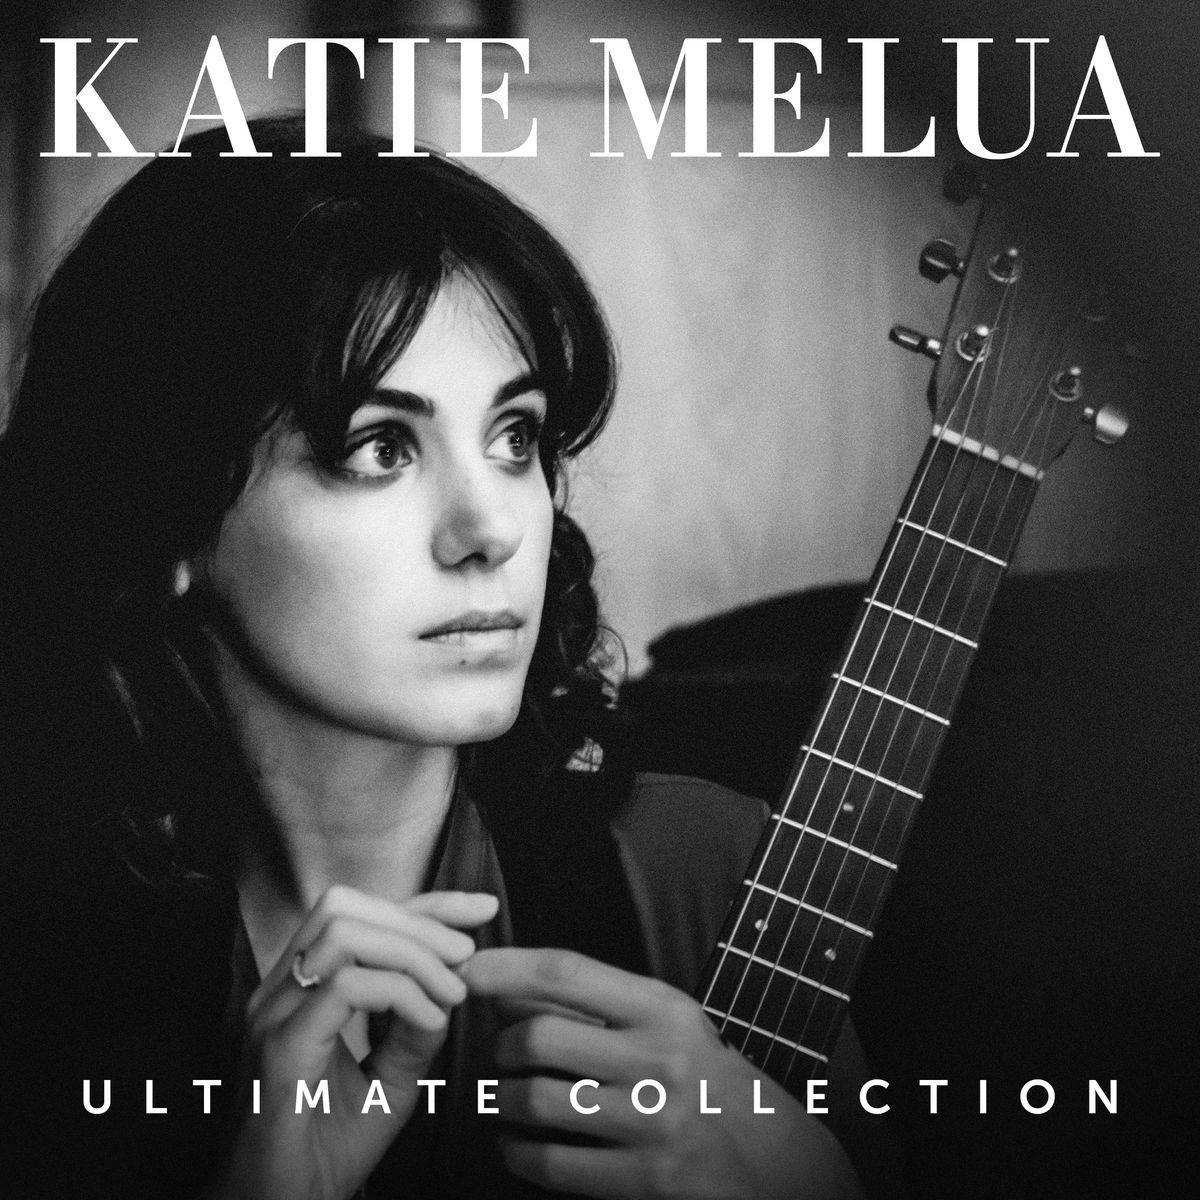 The Ultimate Collection by Katie Melua